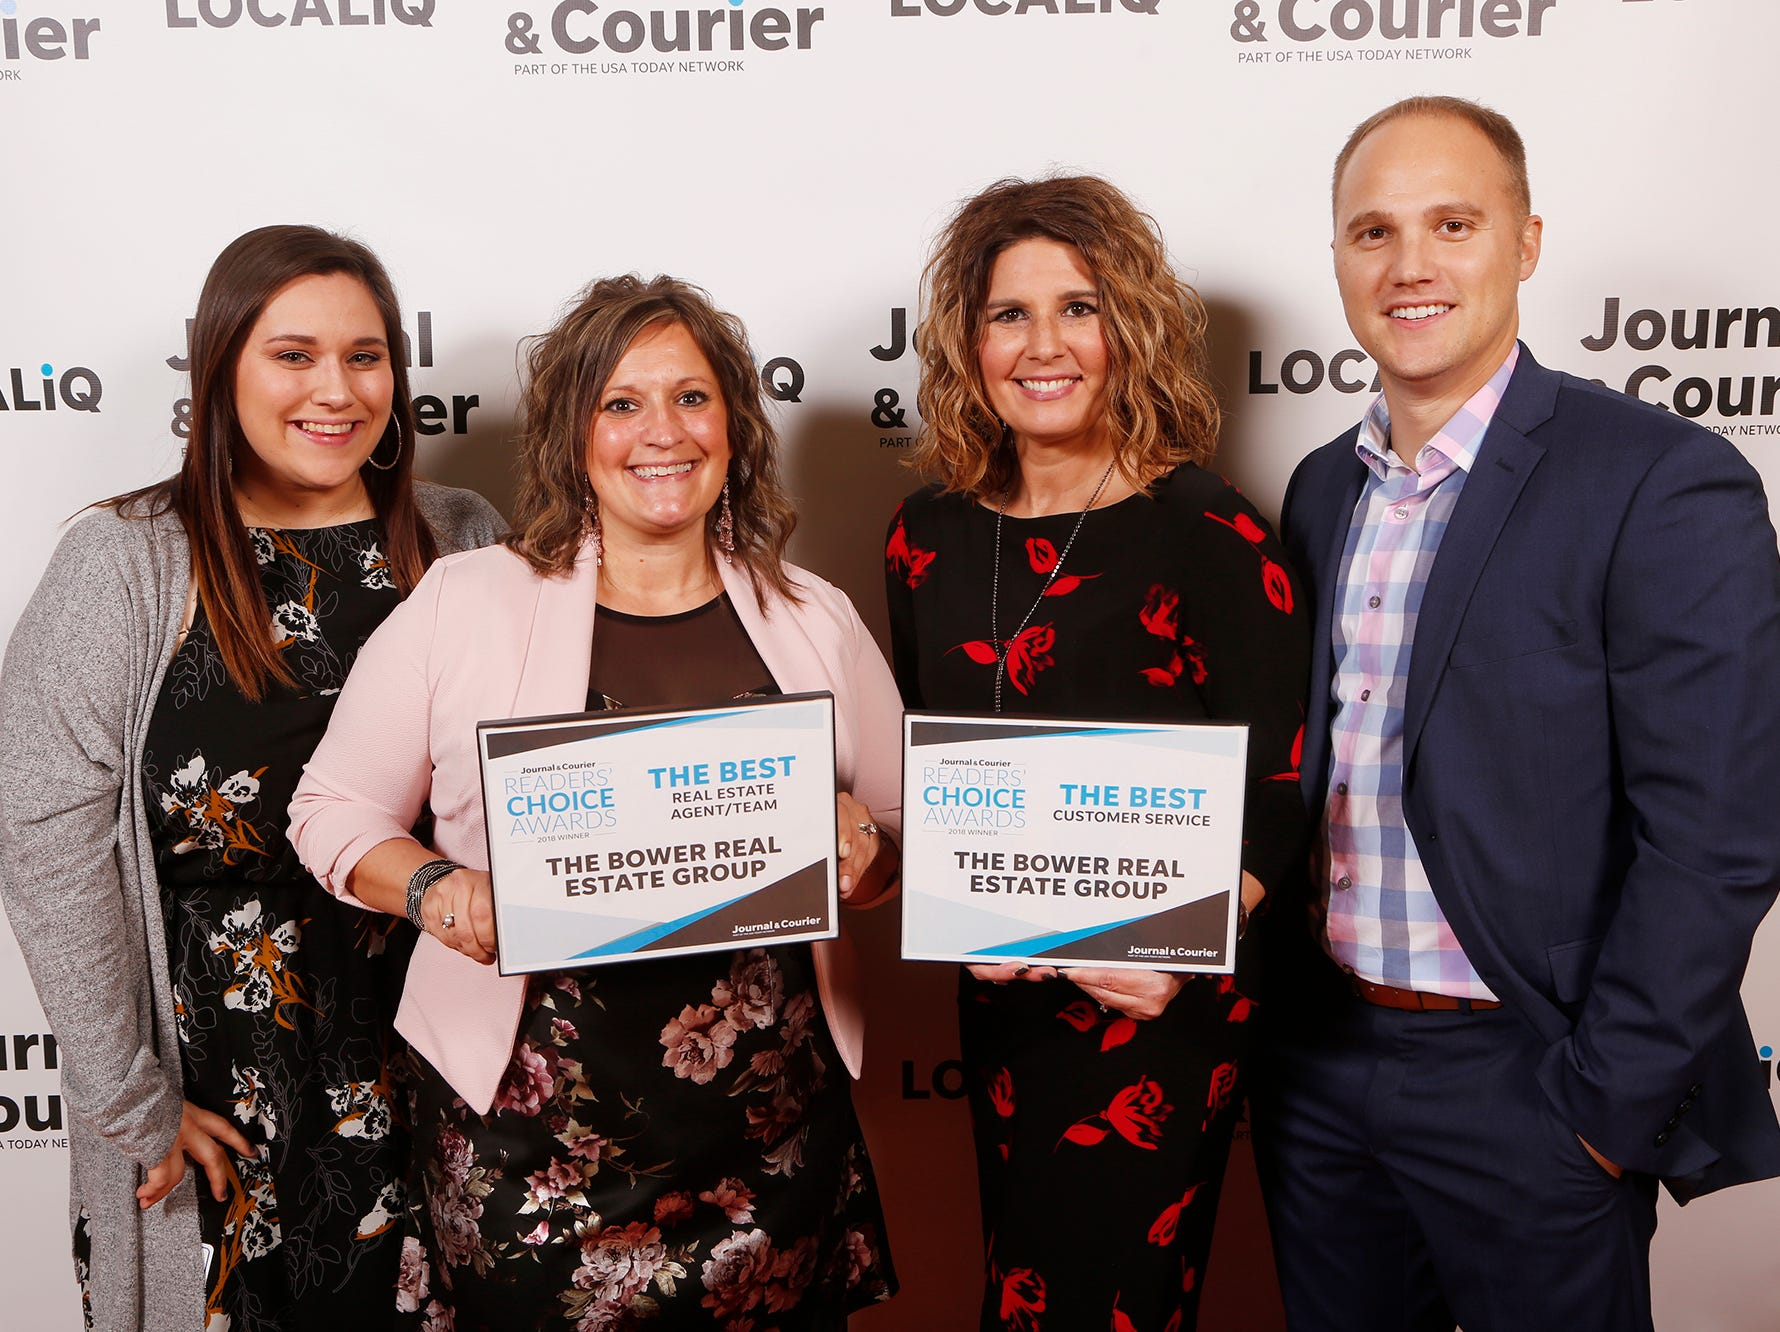 The Bower Real Estate Group, Journal & Courier Readers' Choice Awards winner for the best real estate agent/team and the best customer service.